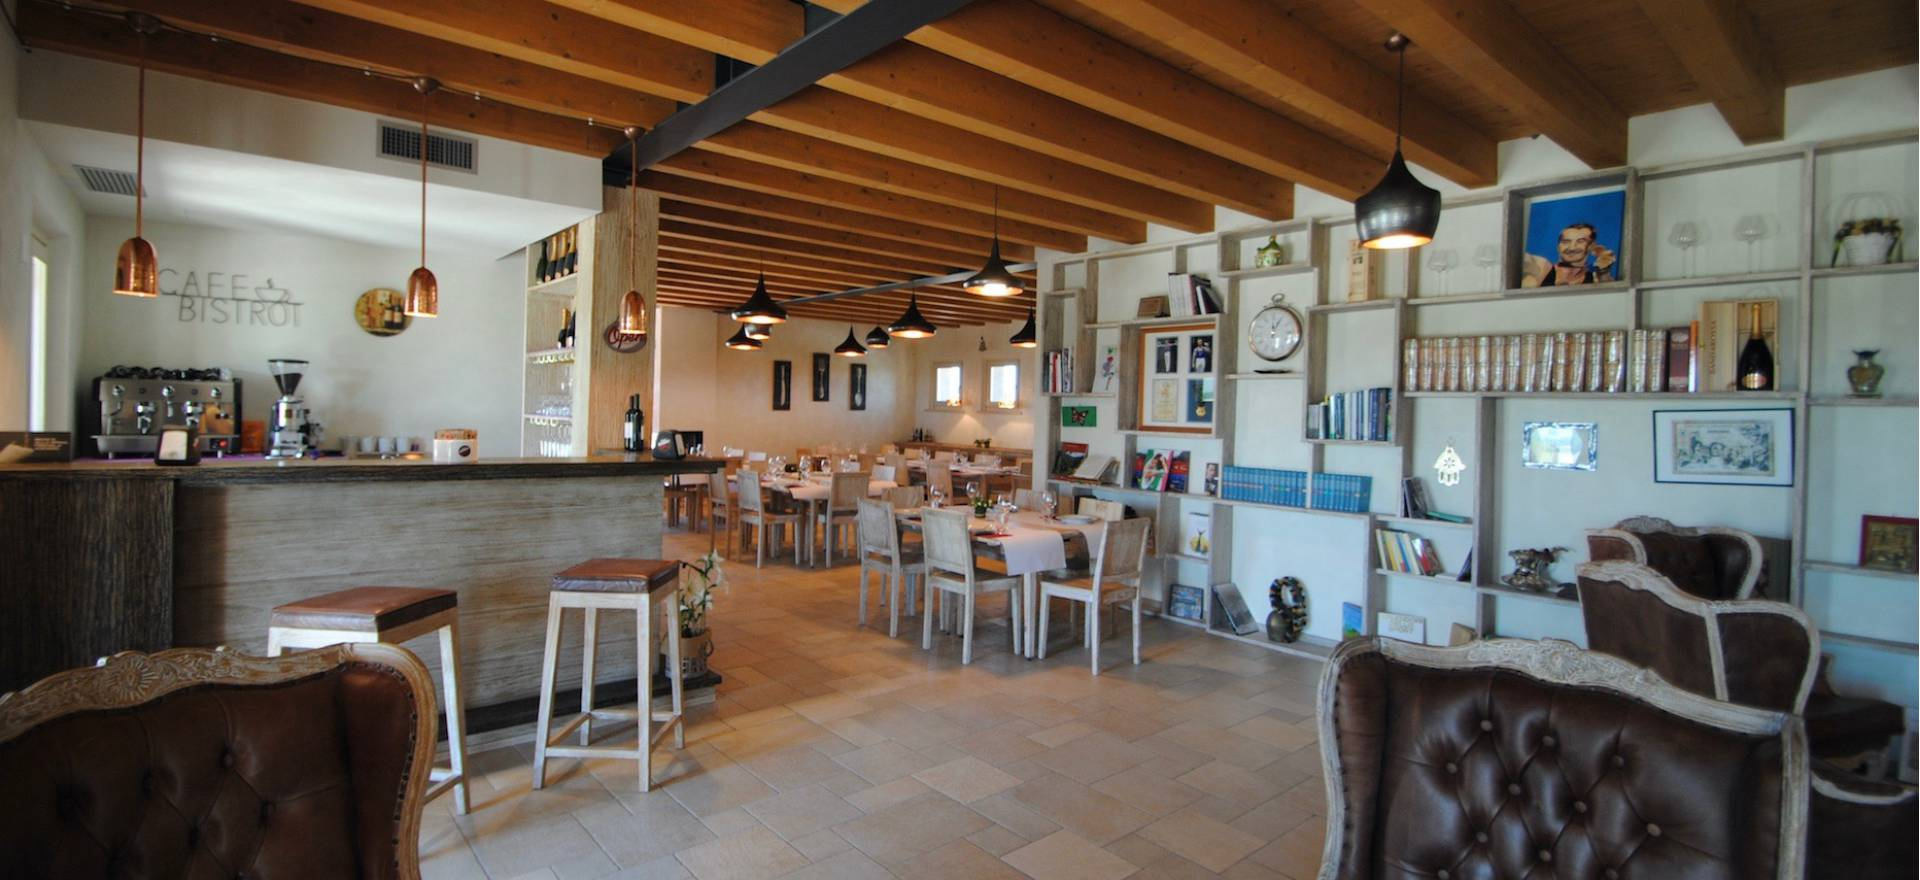 Agriturismo Le Marche Mooie agriturismo in Marche met restaurant